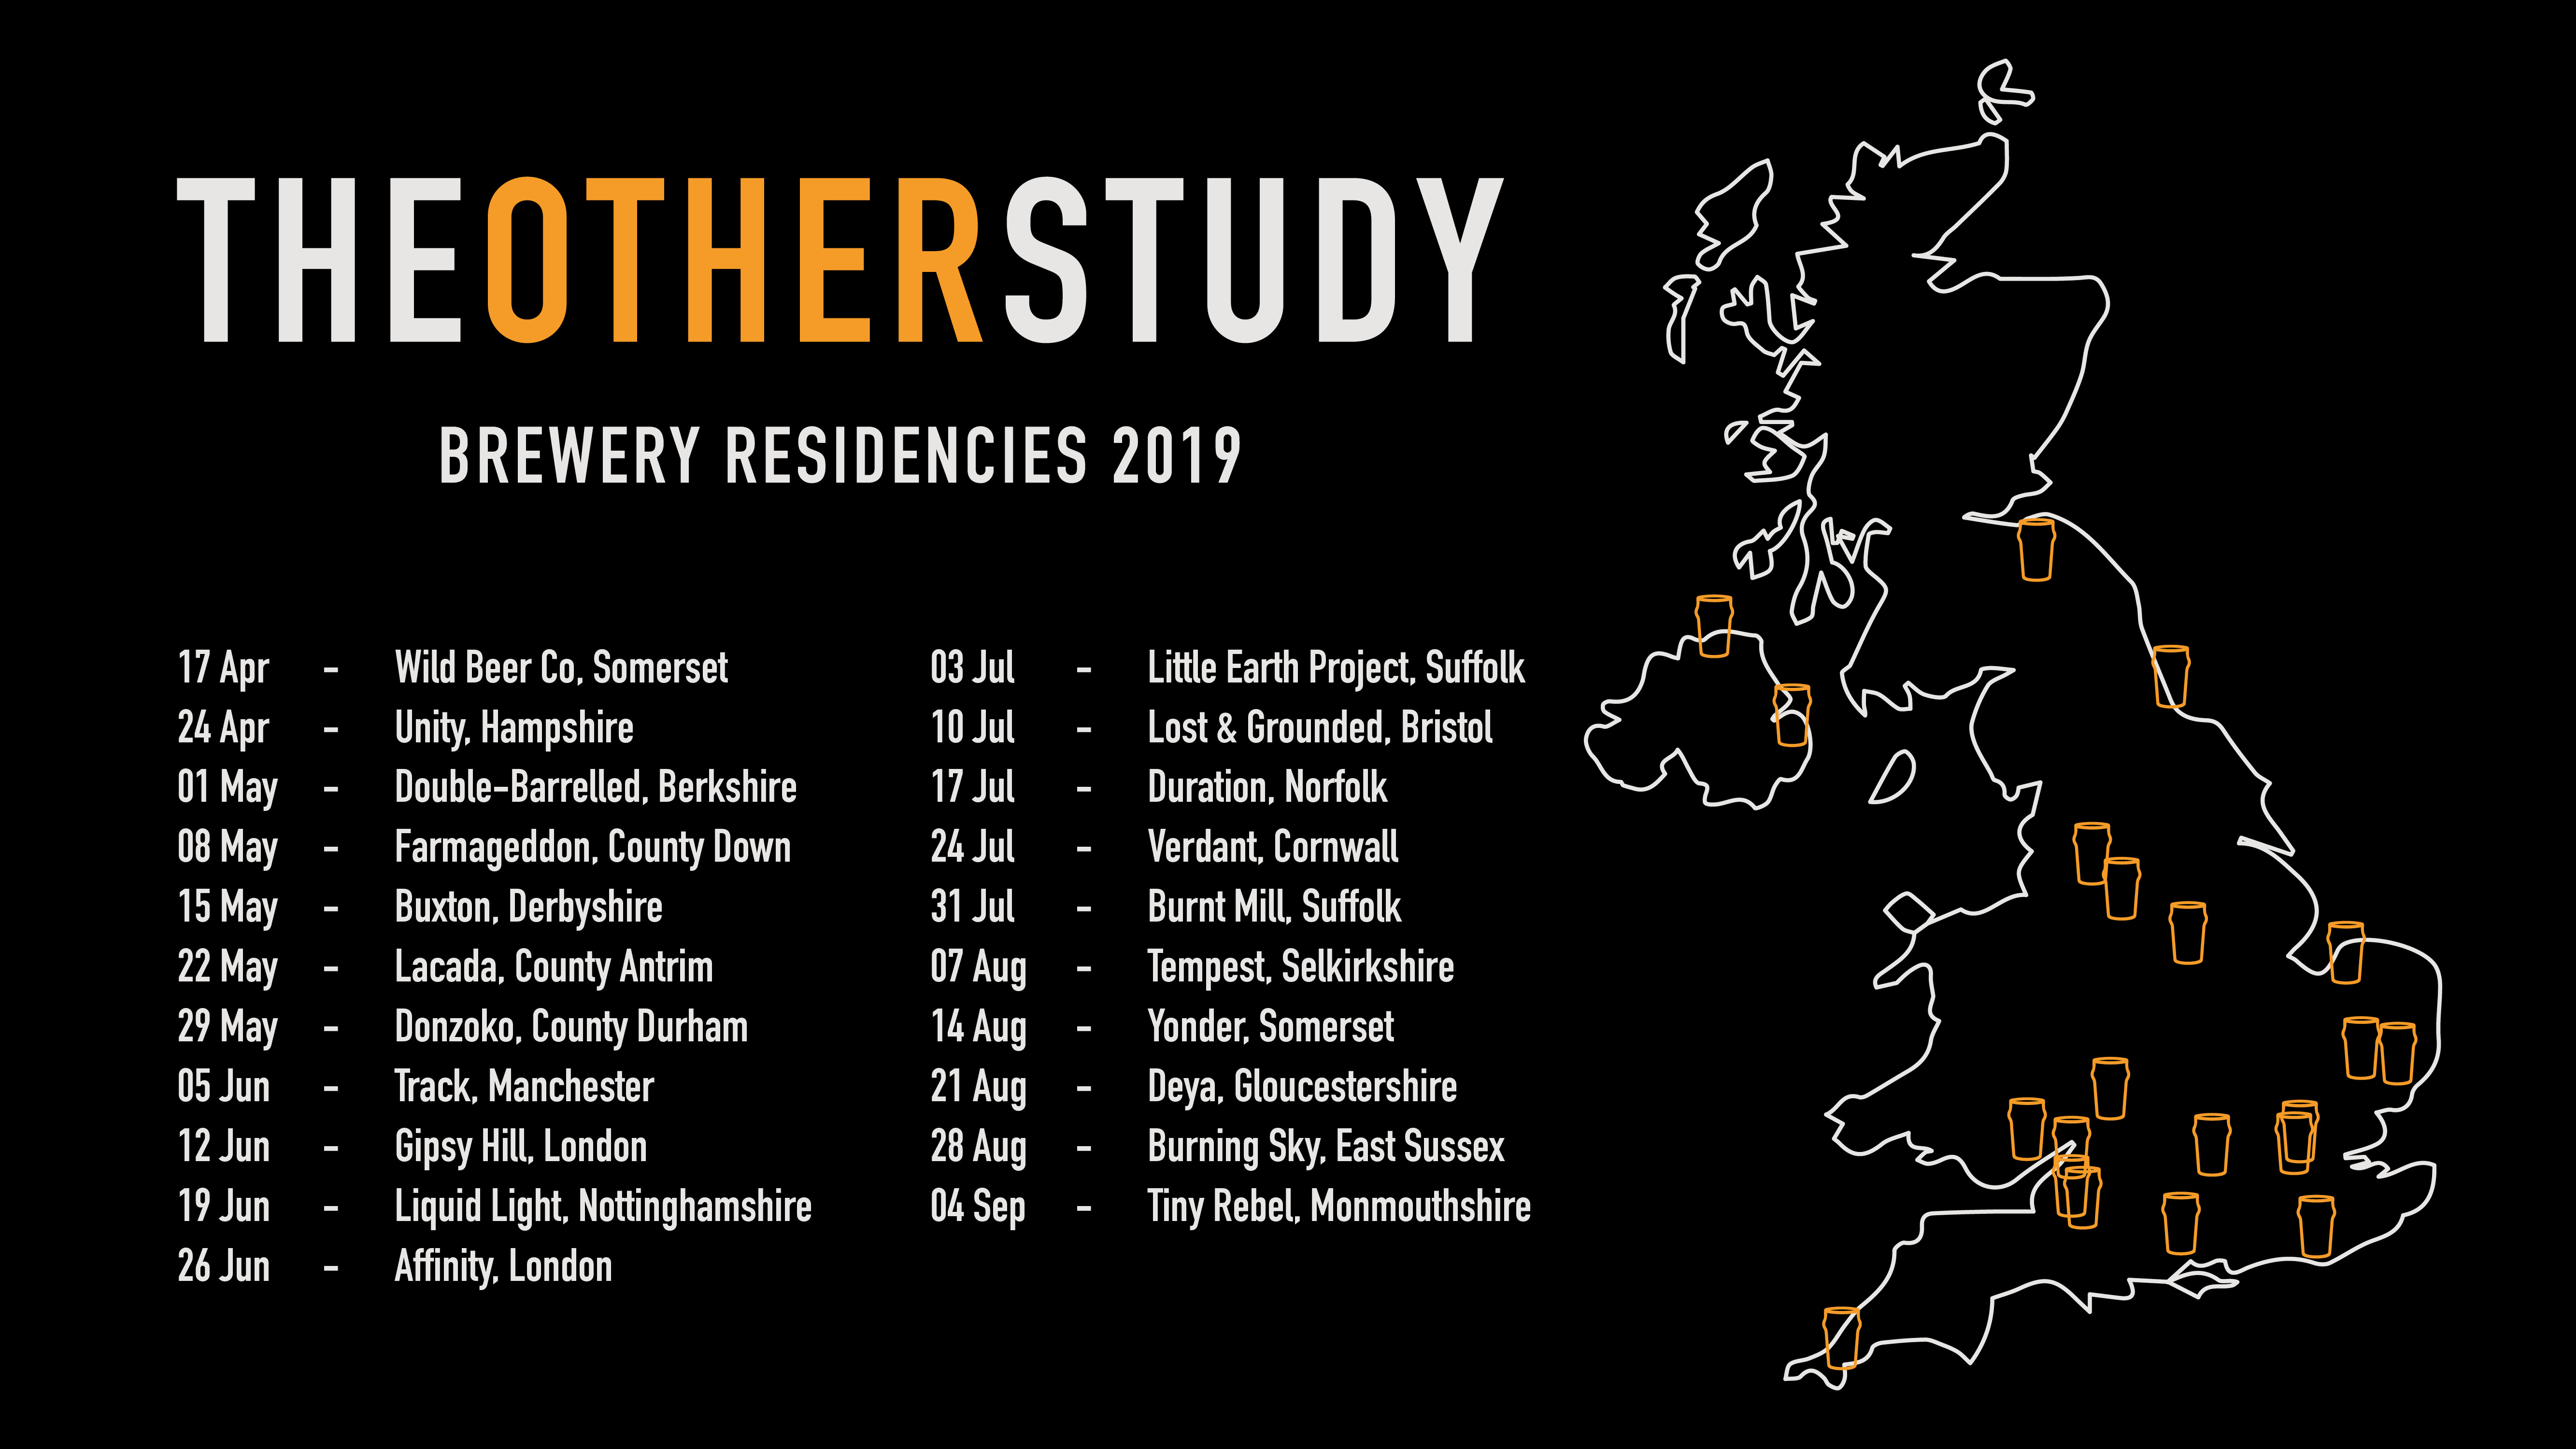 The Otherstudy Brewery Residencies